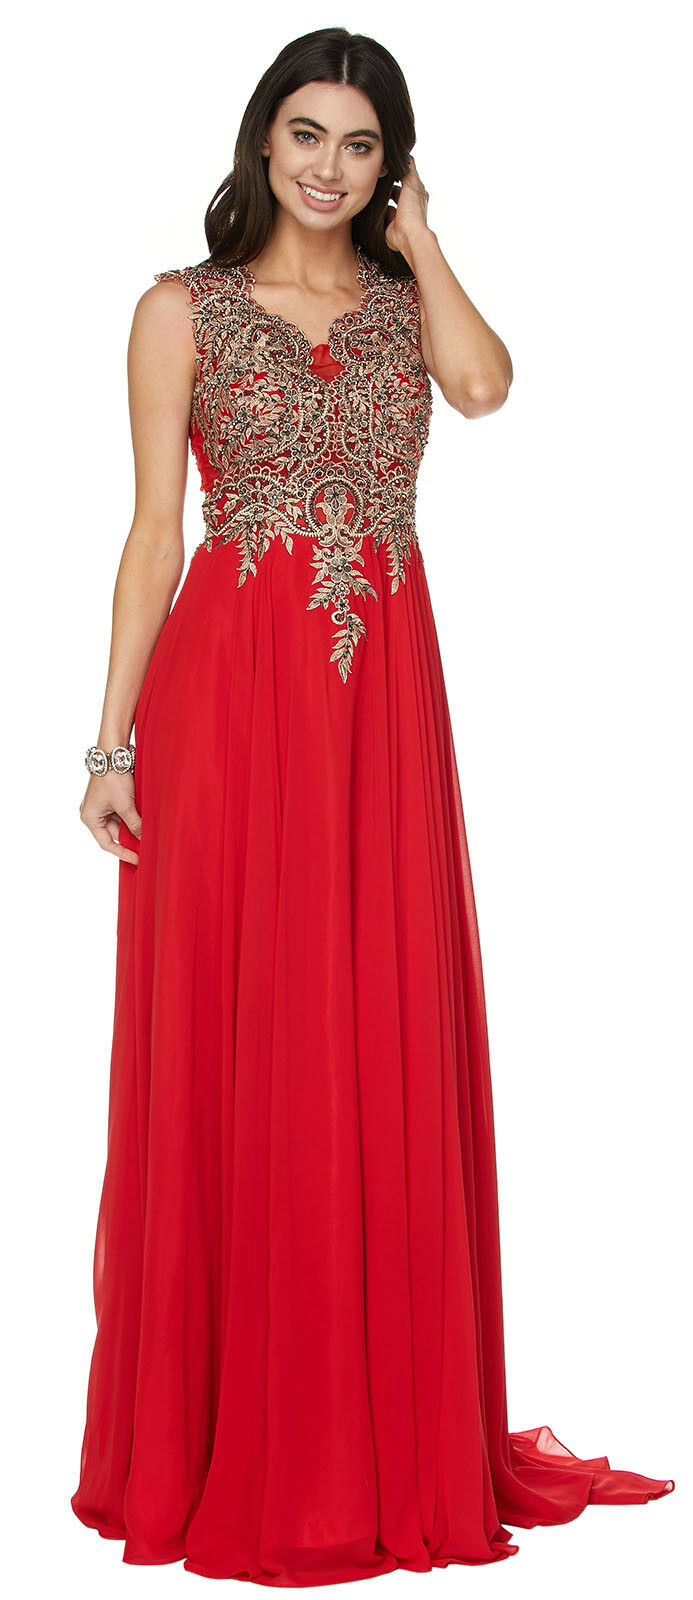 PROM FORMAL GOWN SPECIAL OCCASION DESIGNER DANCE PARTY EVENING DRESS RED CARPET